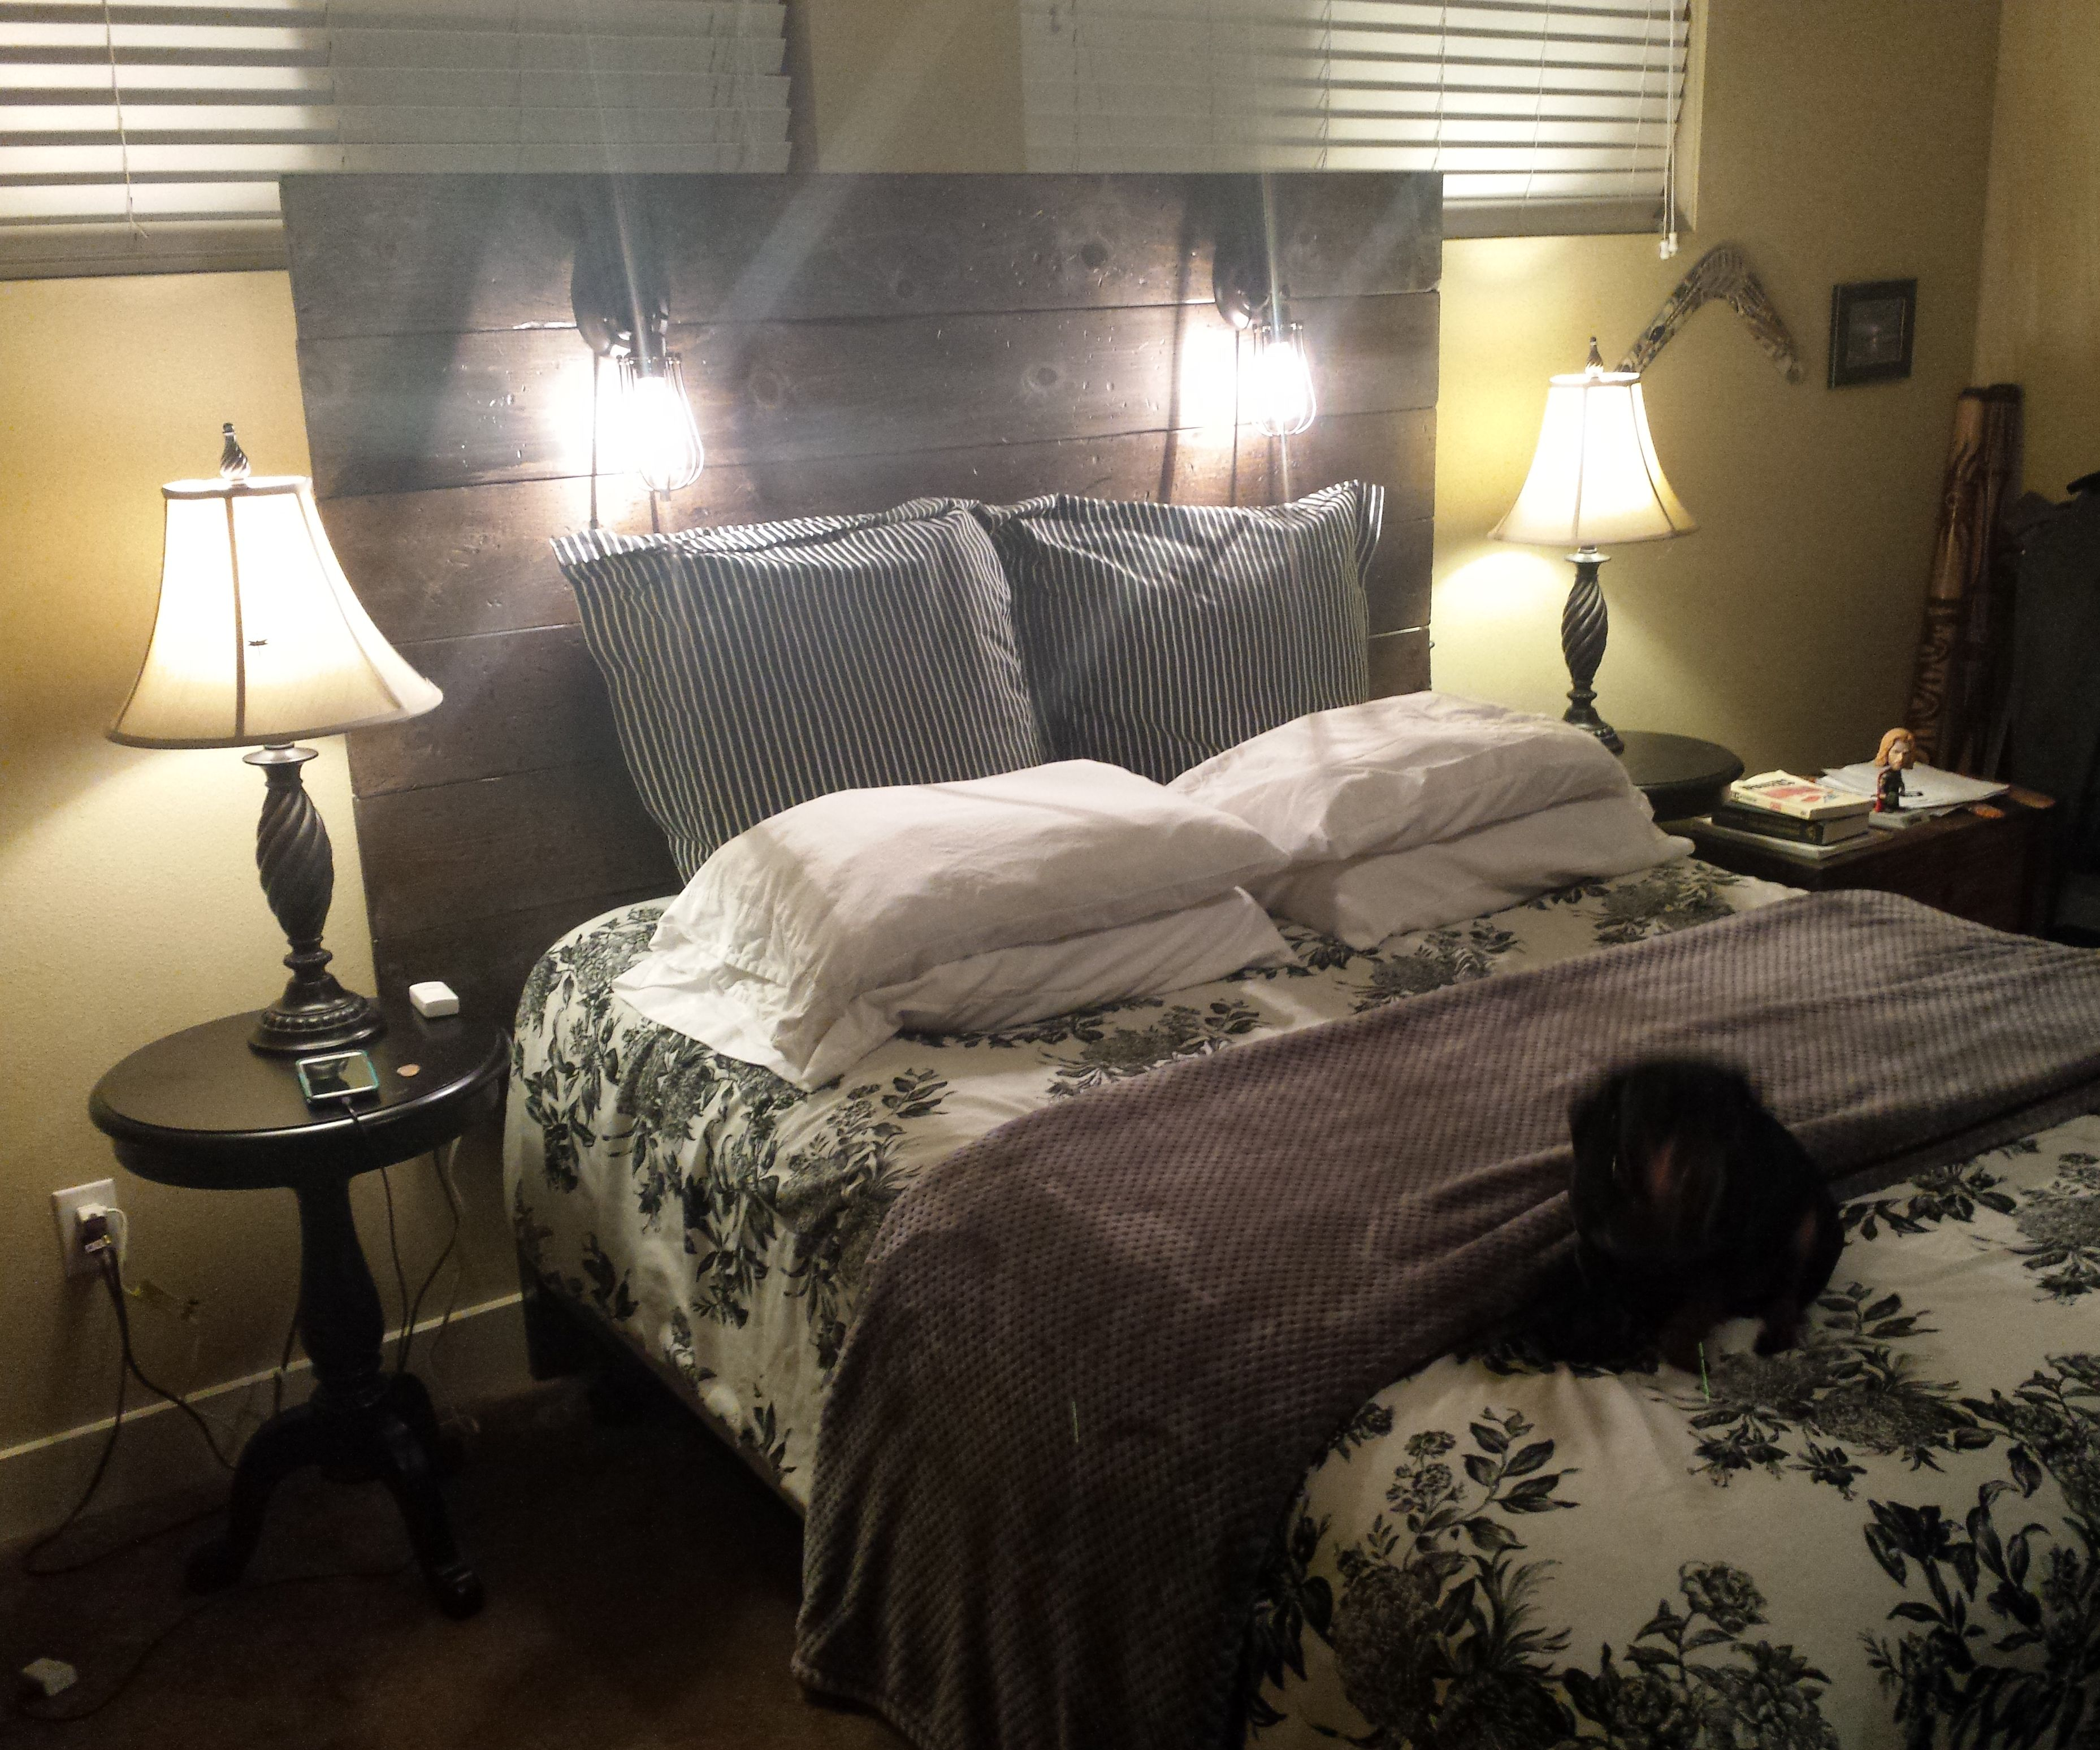 Rustic Headboard With His and Her Lights